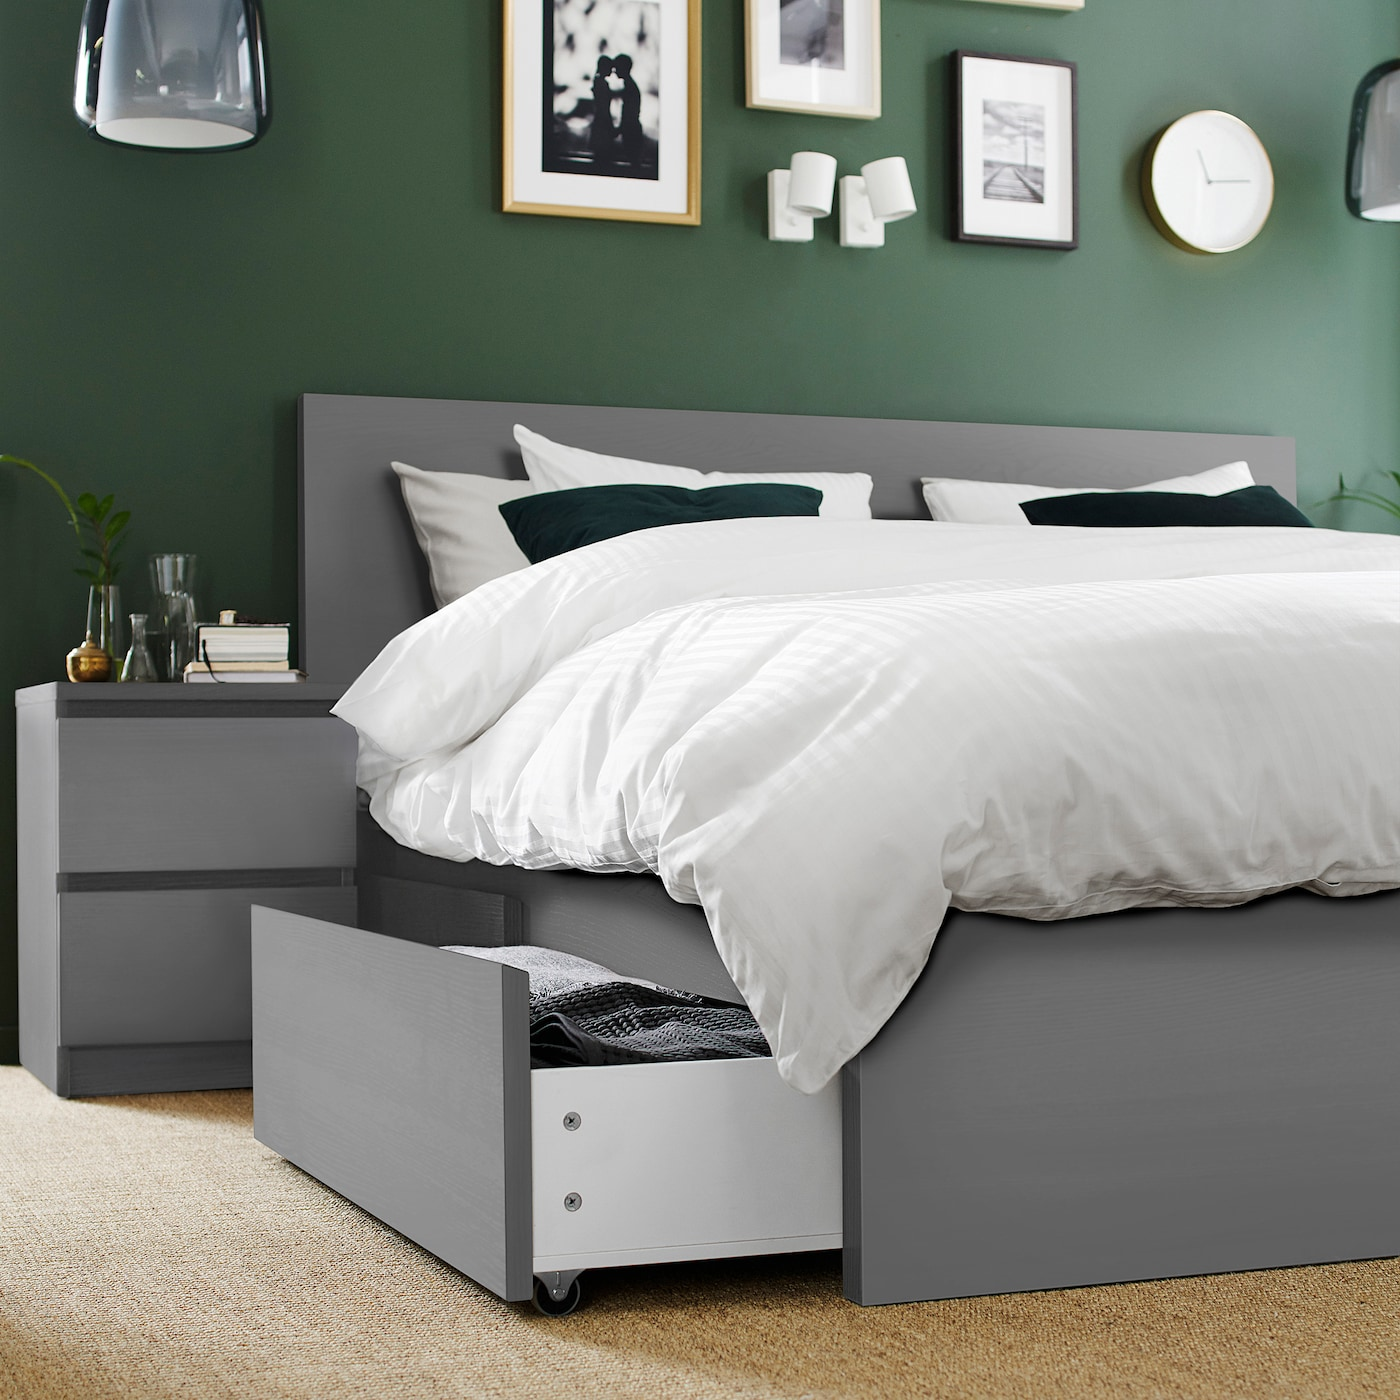 Malm Bed Frame High W 4 Storage Boxes Grey Stained Luroy Standard Double Ikea